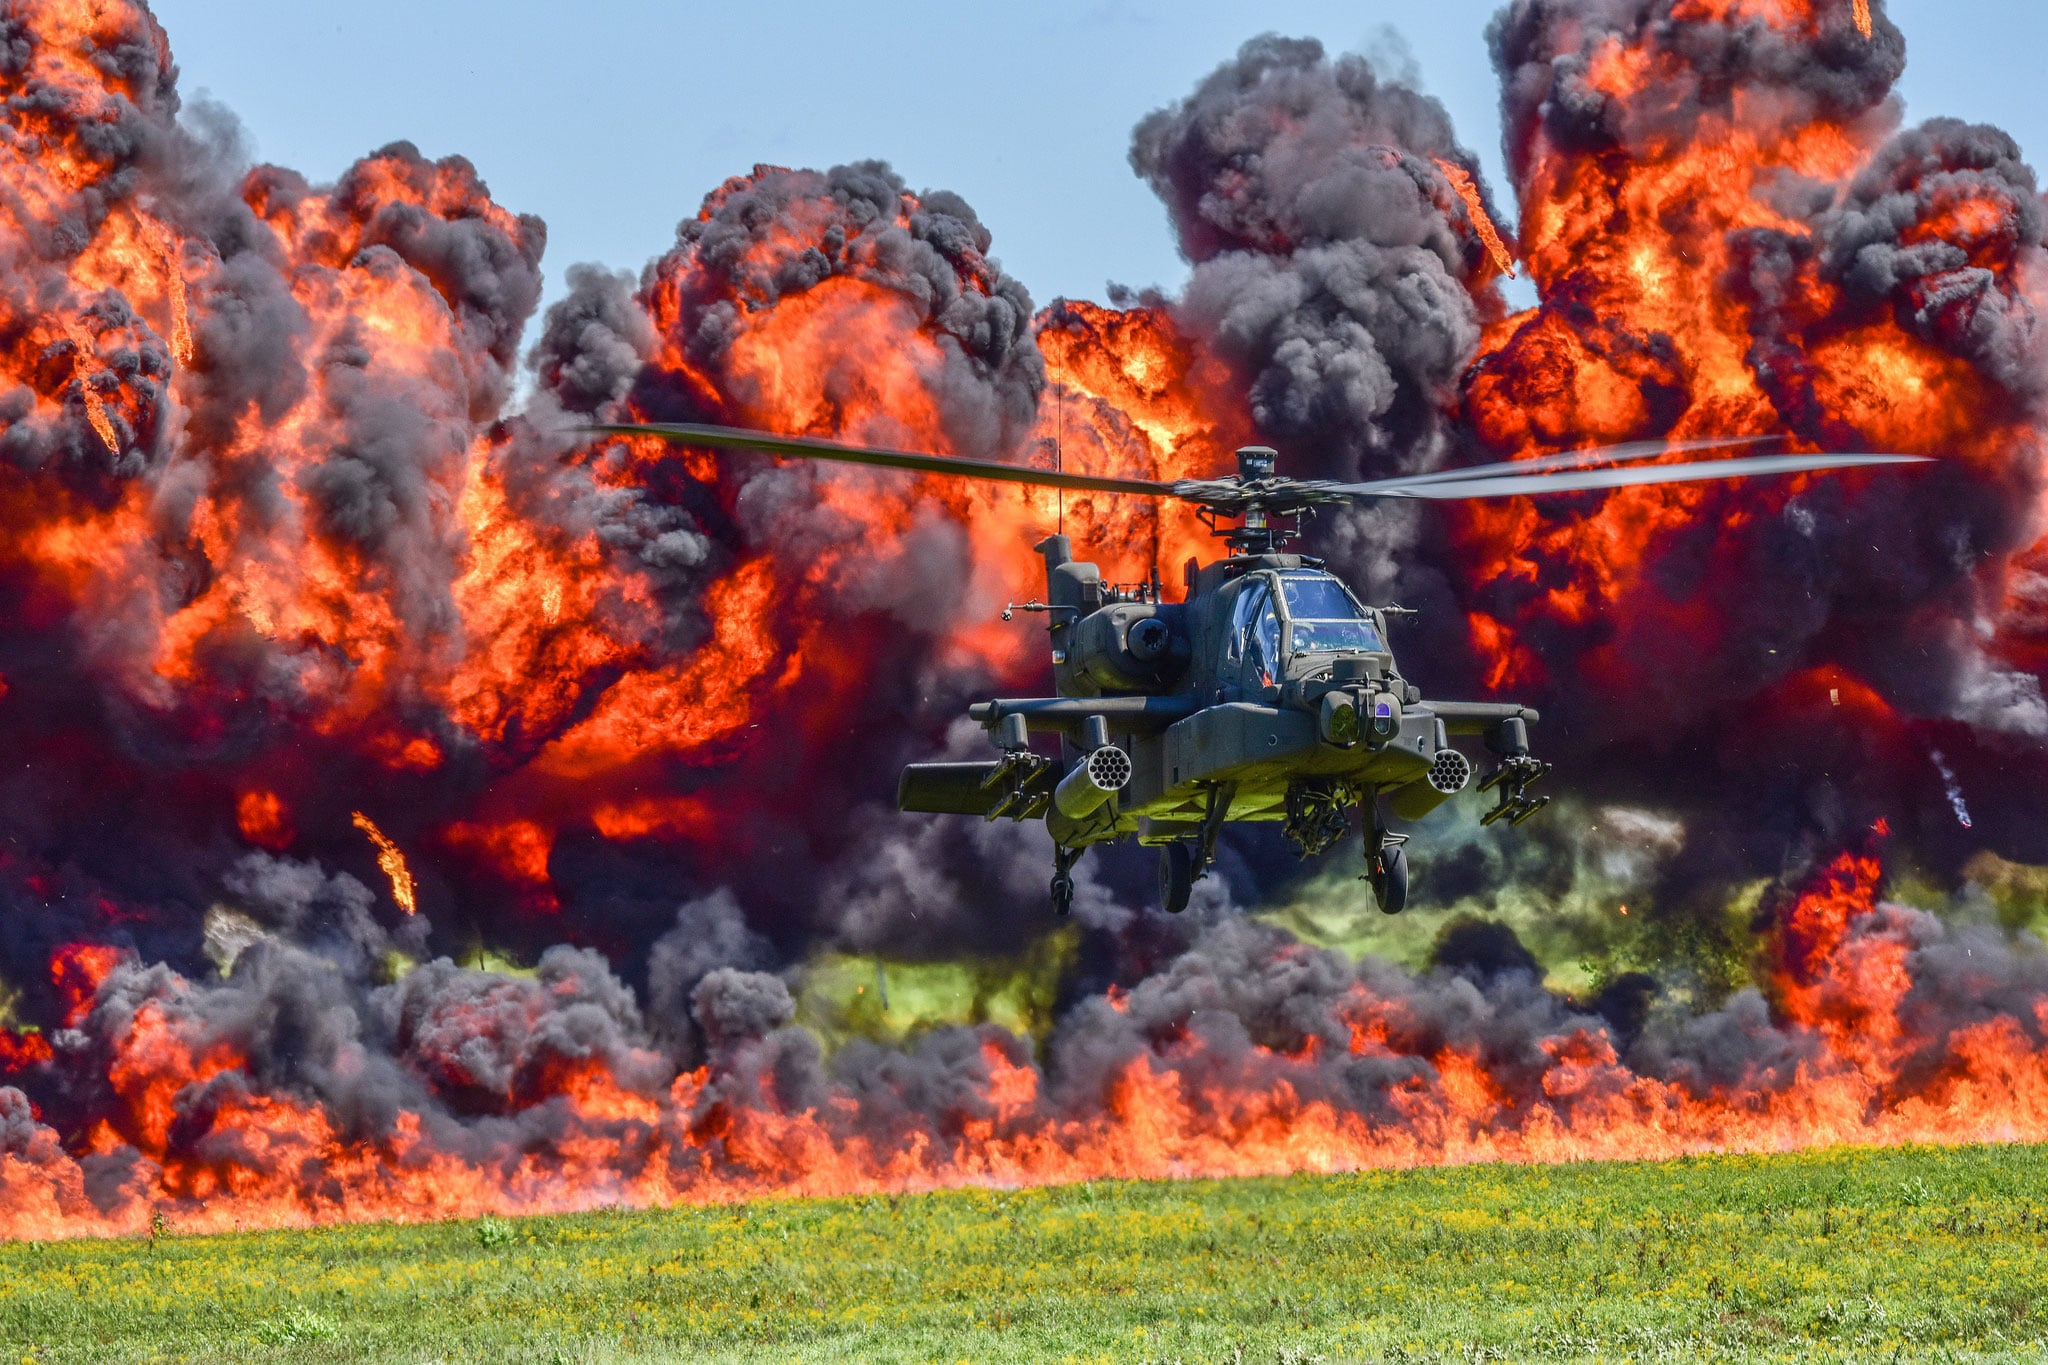 U.S. Army and Air National Guard personnel participate in the combined arms demo during the South Carolina National Guard Air and Ground Expo at McEntire Joint National Guard Base, South Carolina, May 6, 2017. This expo is a combined arms demonstration showcasing the capabilities of South Carolina National Guard Airmen and Soldiers while saying thank you for the support of fellow South Carolinians and the surrounding community.